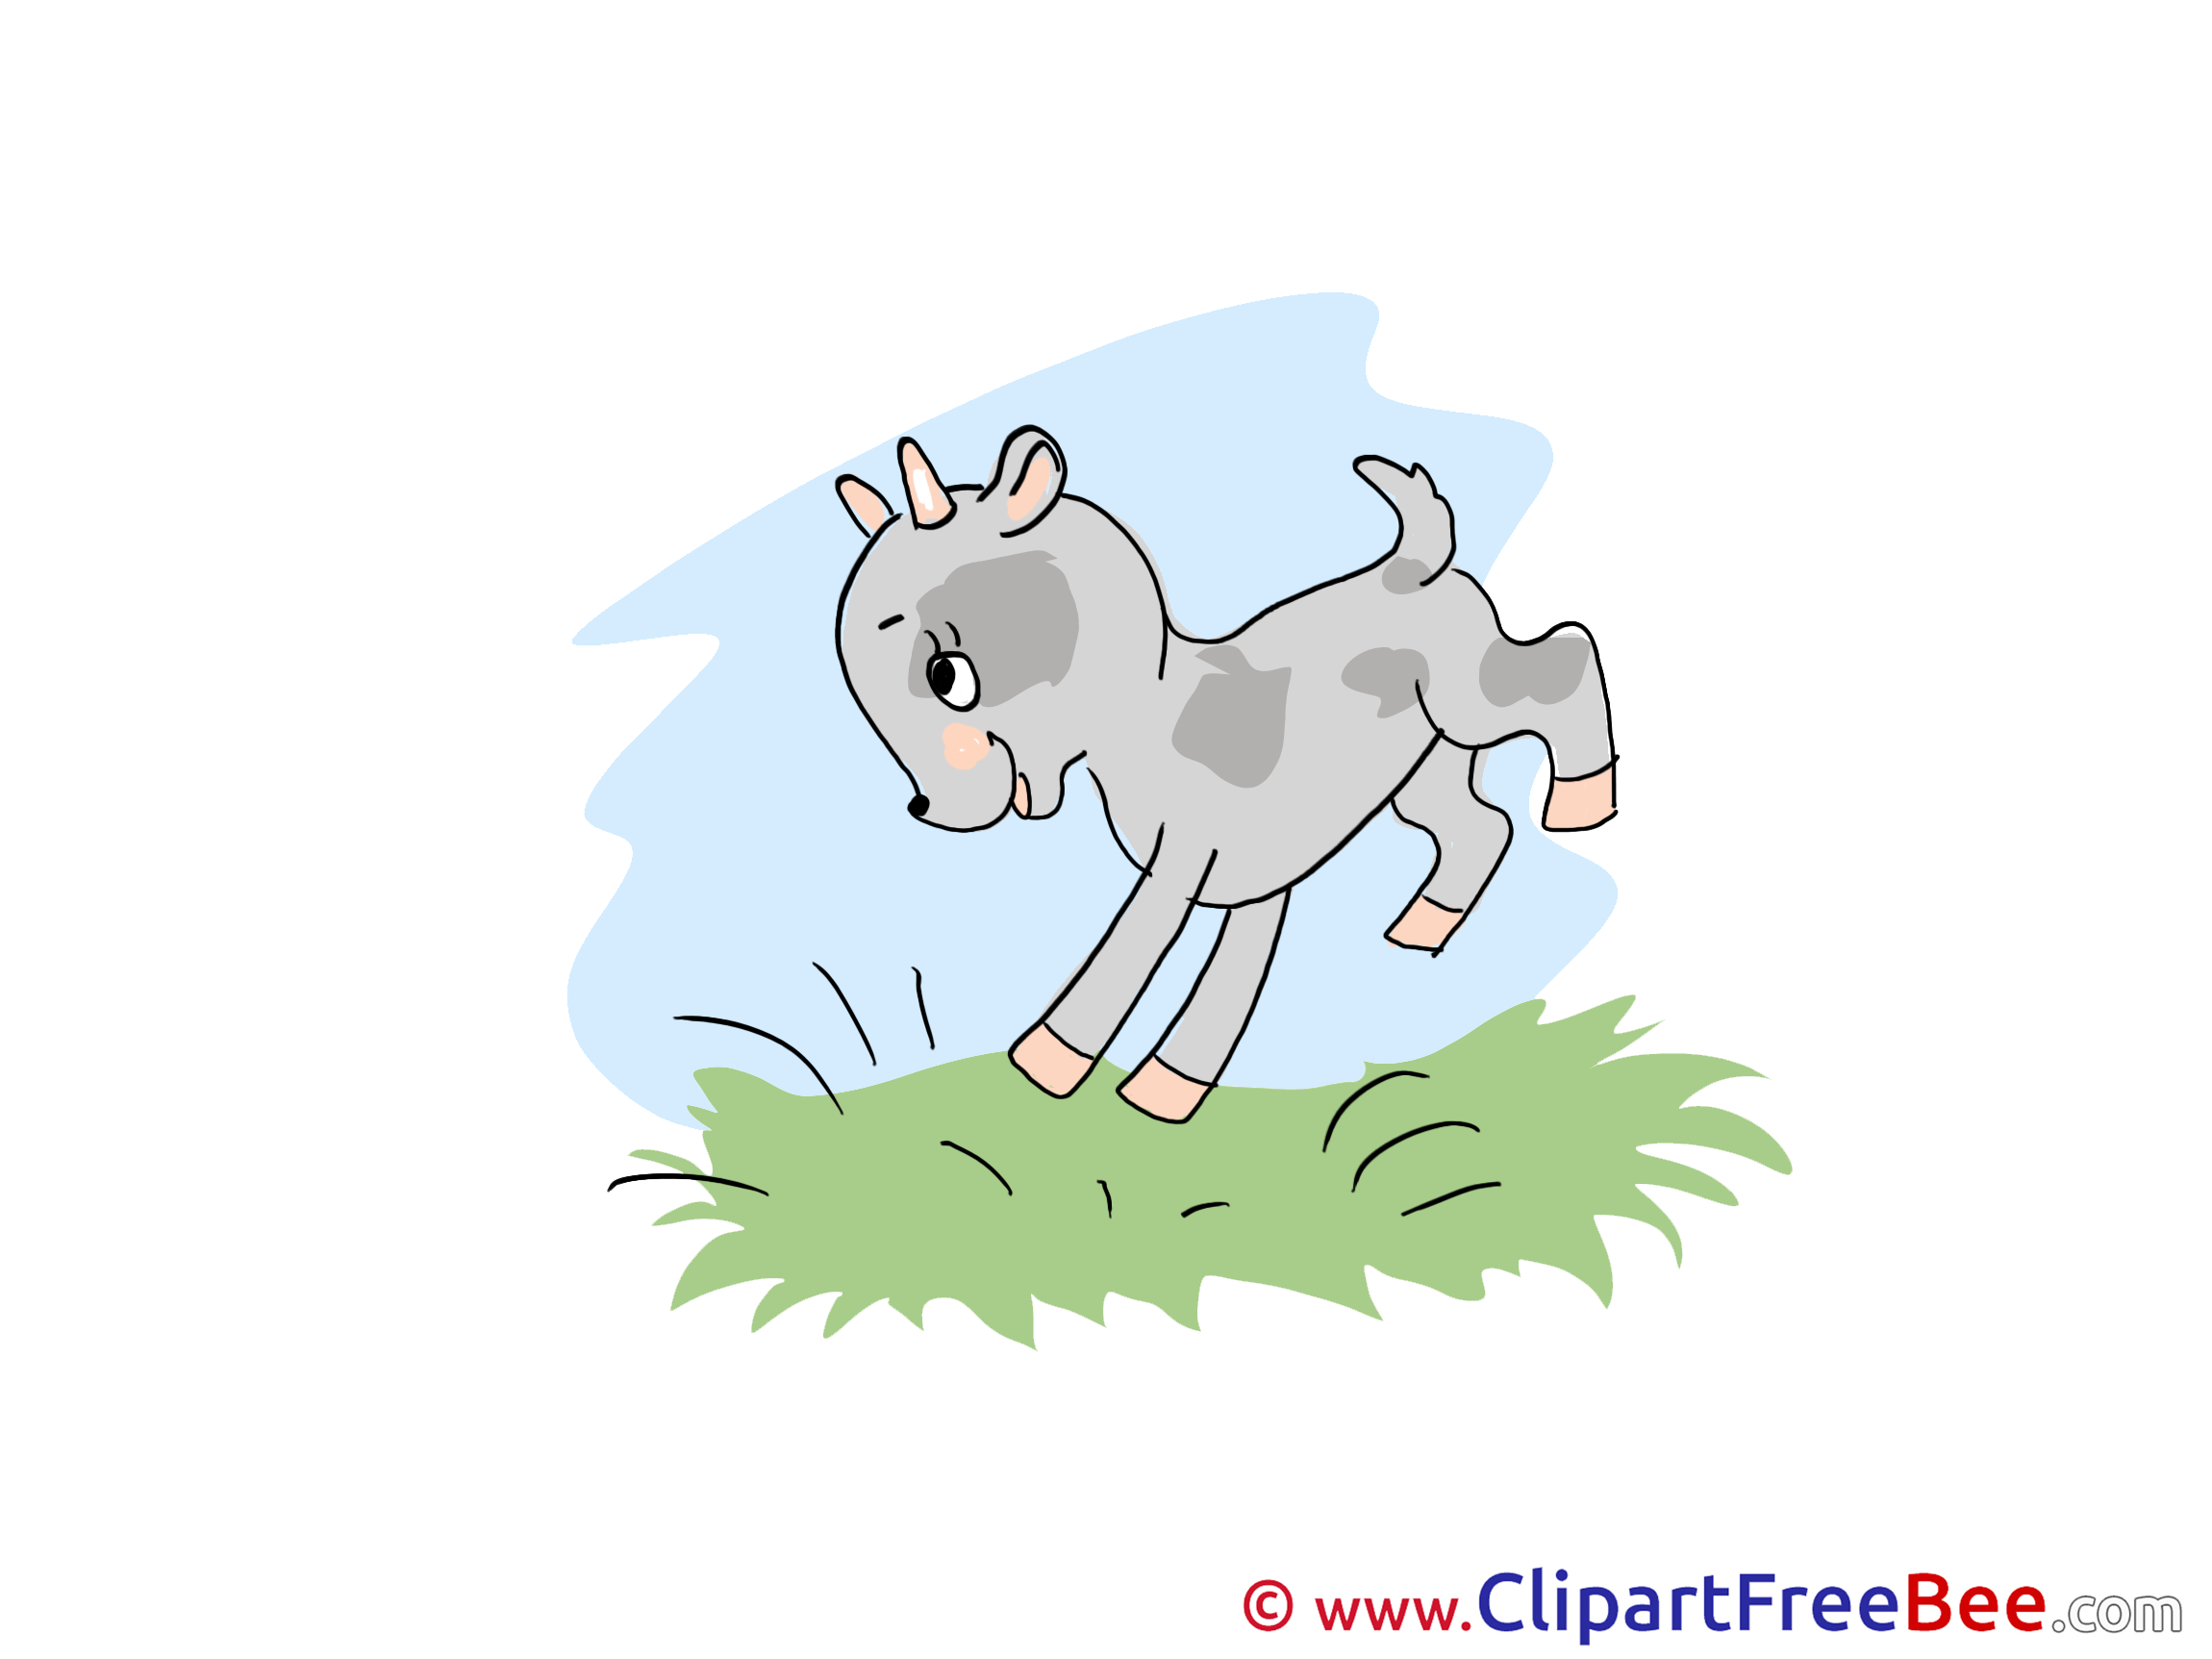 Sky Grass Goatling Clipart free Image download